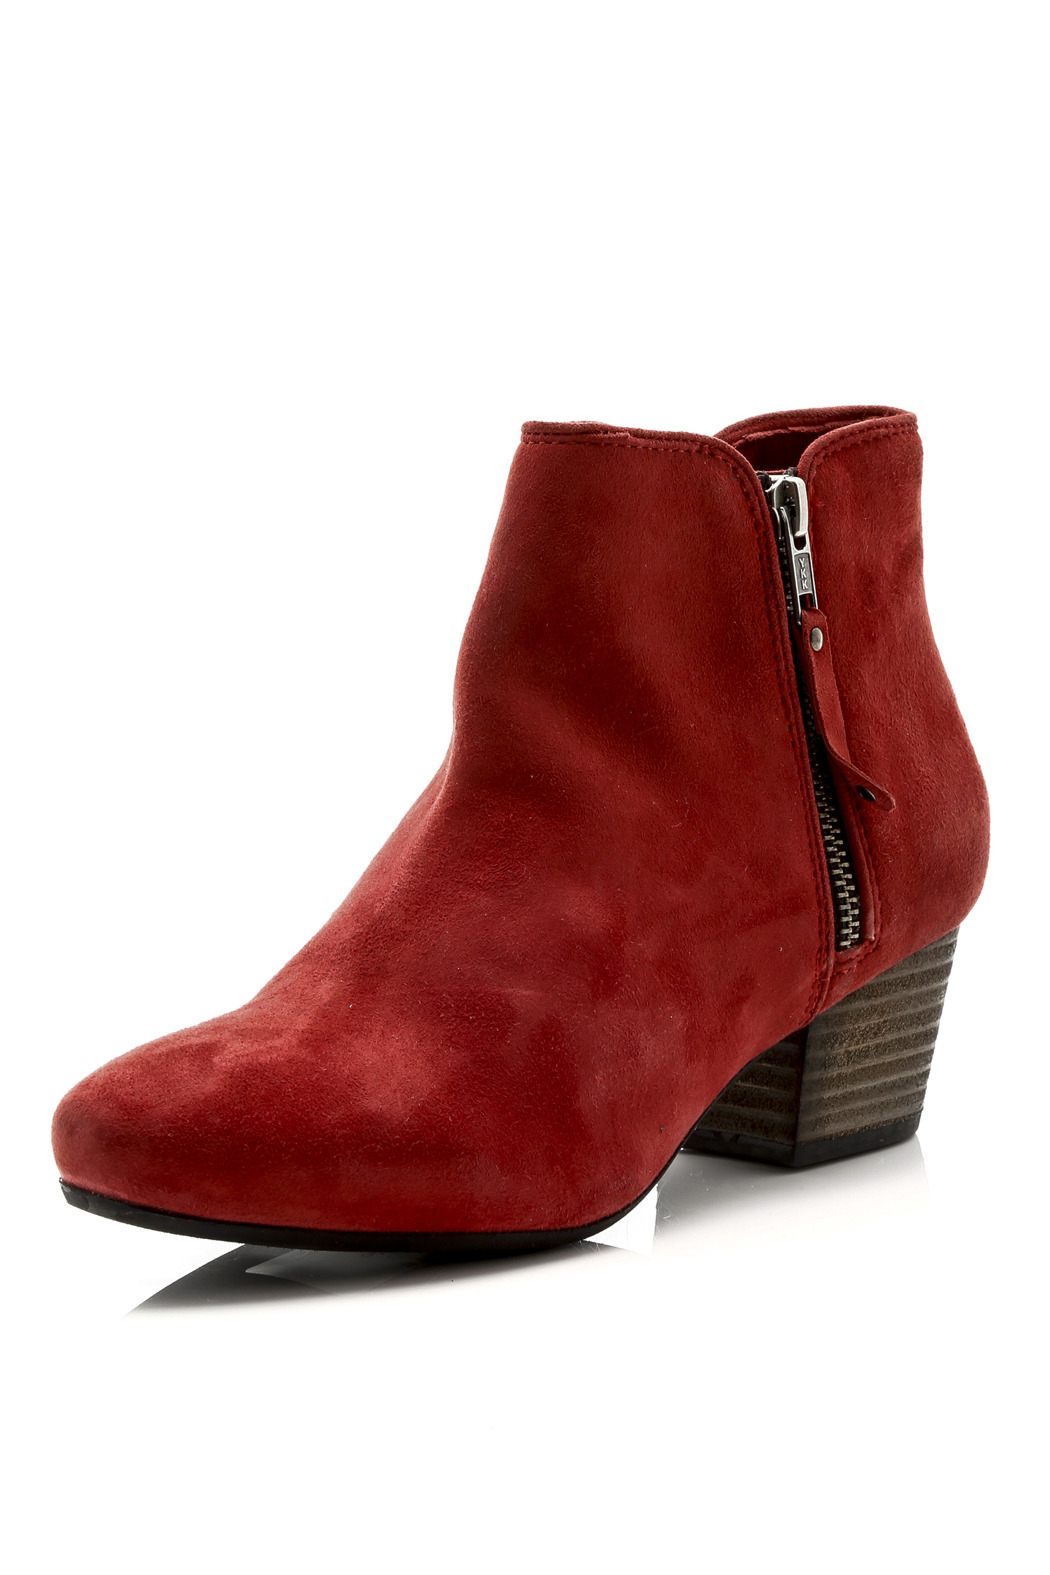 Let the Dolce Vita Chase Cinnamon Red Suede Leather Mid-Calf Booties get you excited for chilly mornings and chunky knits! Soft supple genuine suede forms a chic, mid-calf boot with a rounded-toe upper and a 6